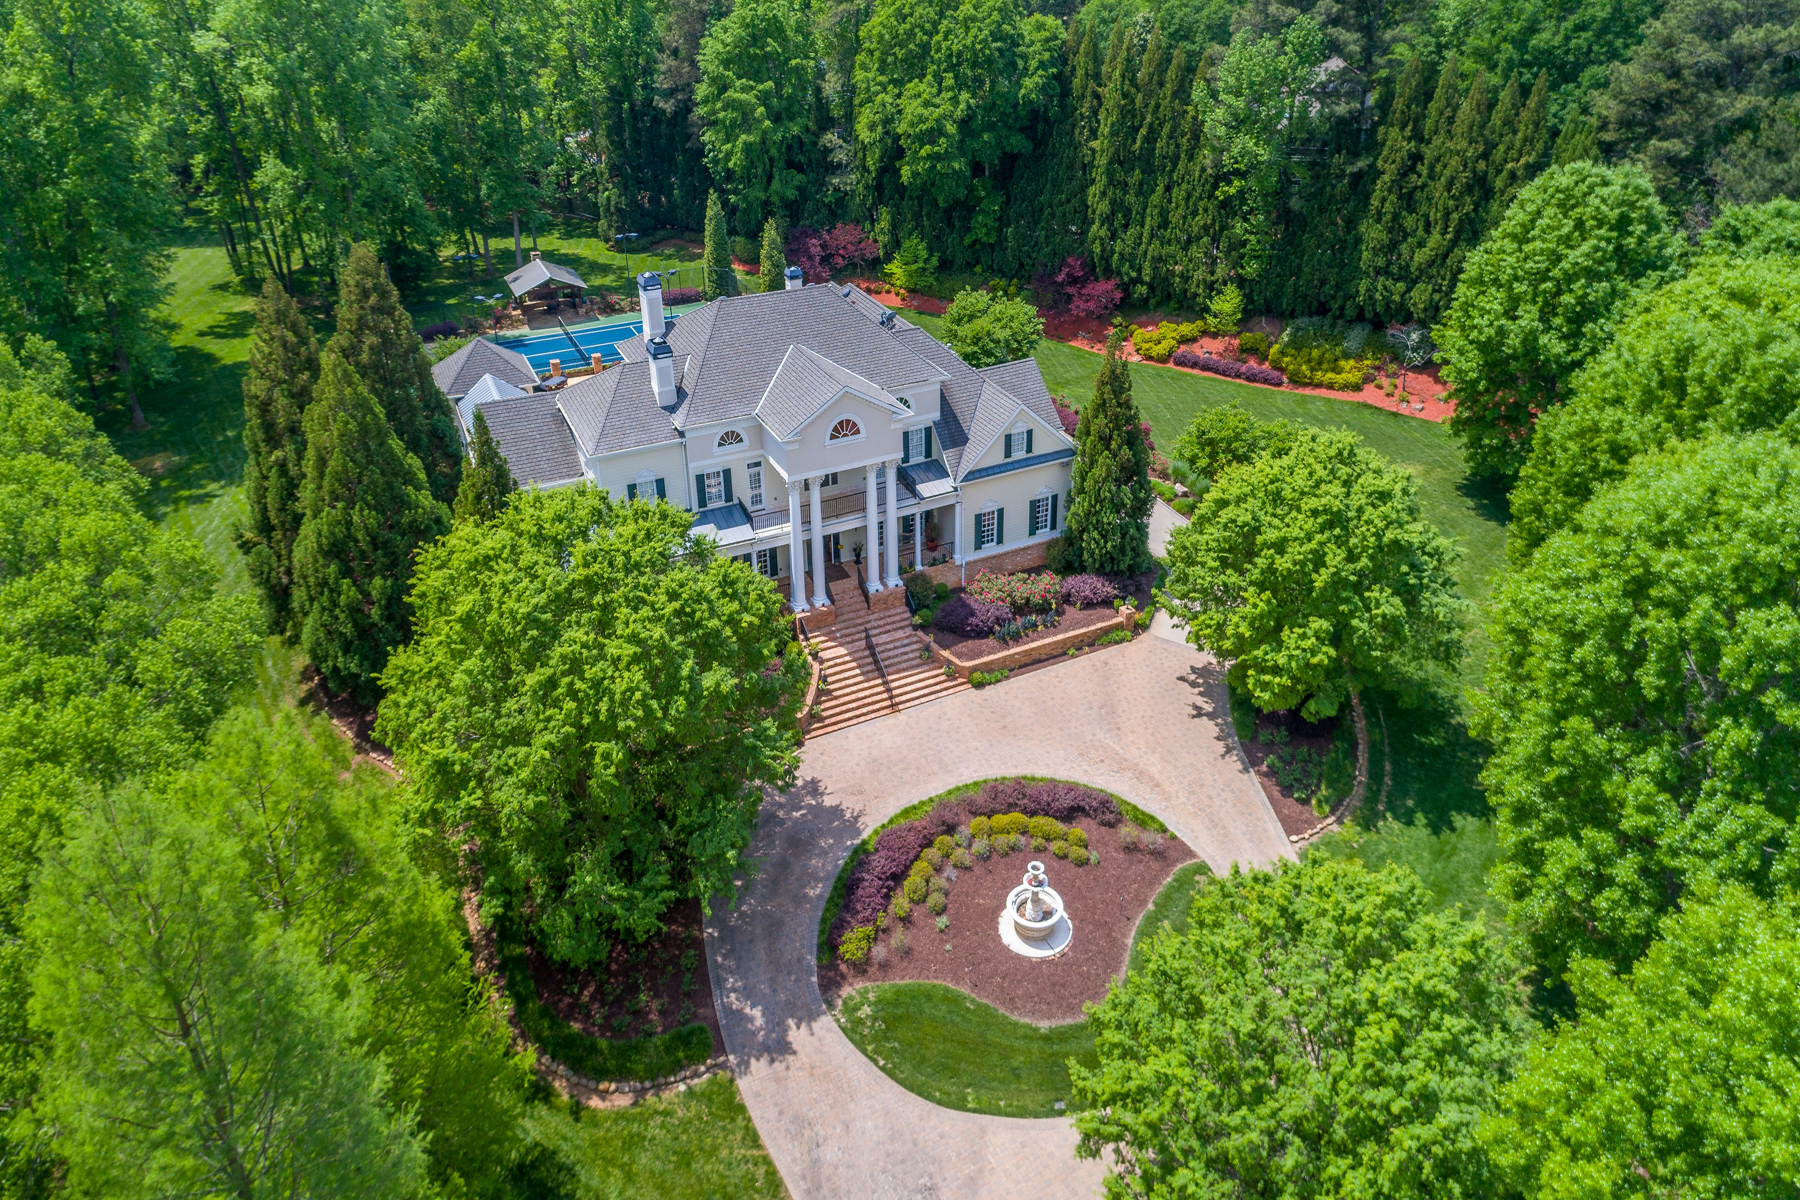 Villa per Vendita alle ore 3940 Paces Manor 3940 Paces Manor SE Atlanta, Georgia, 30339 Stati Uniti